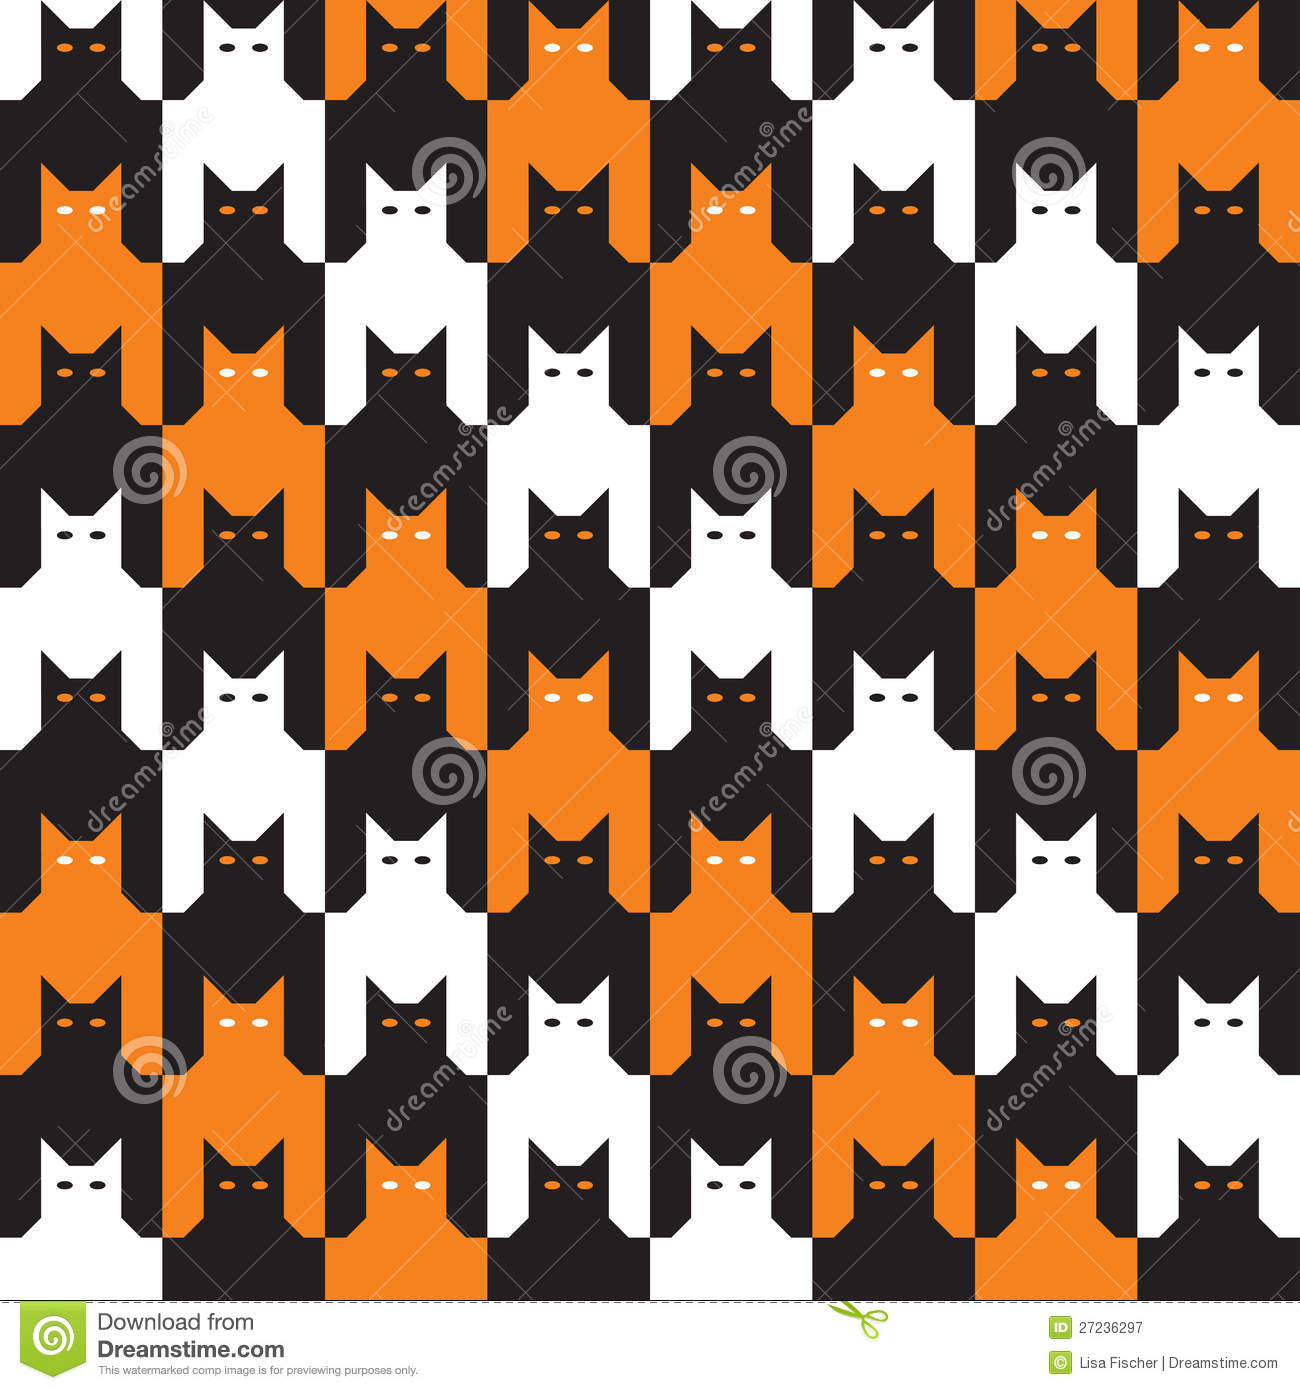 catstooth halloween pattern royalty free stock photography image